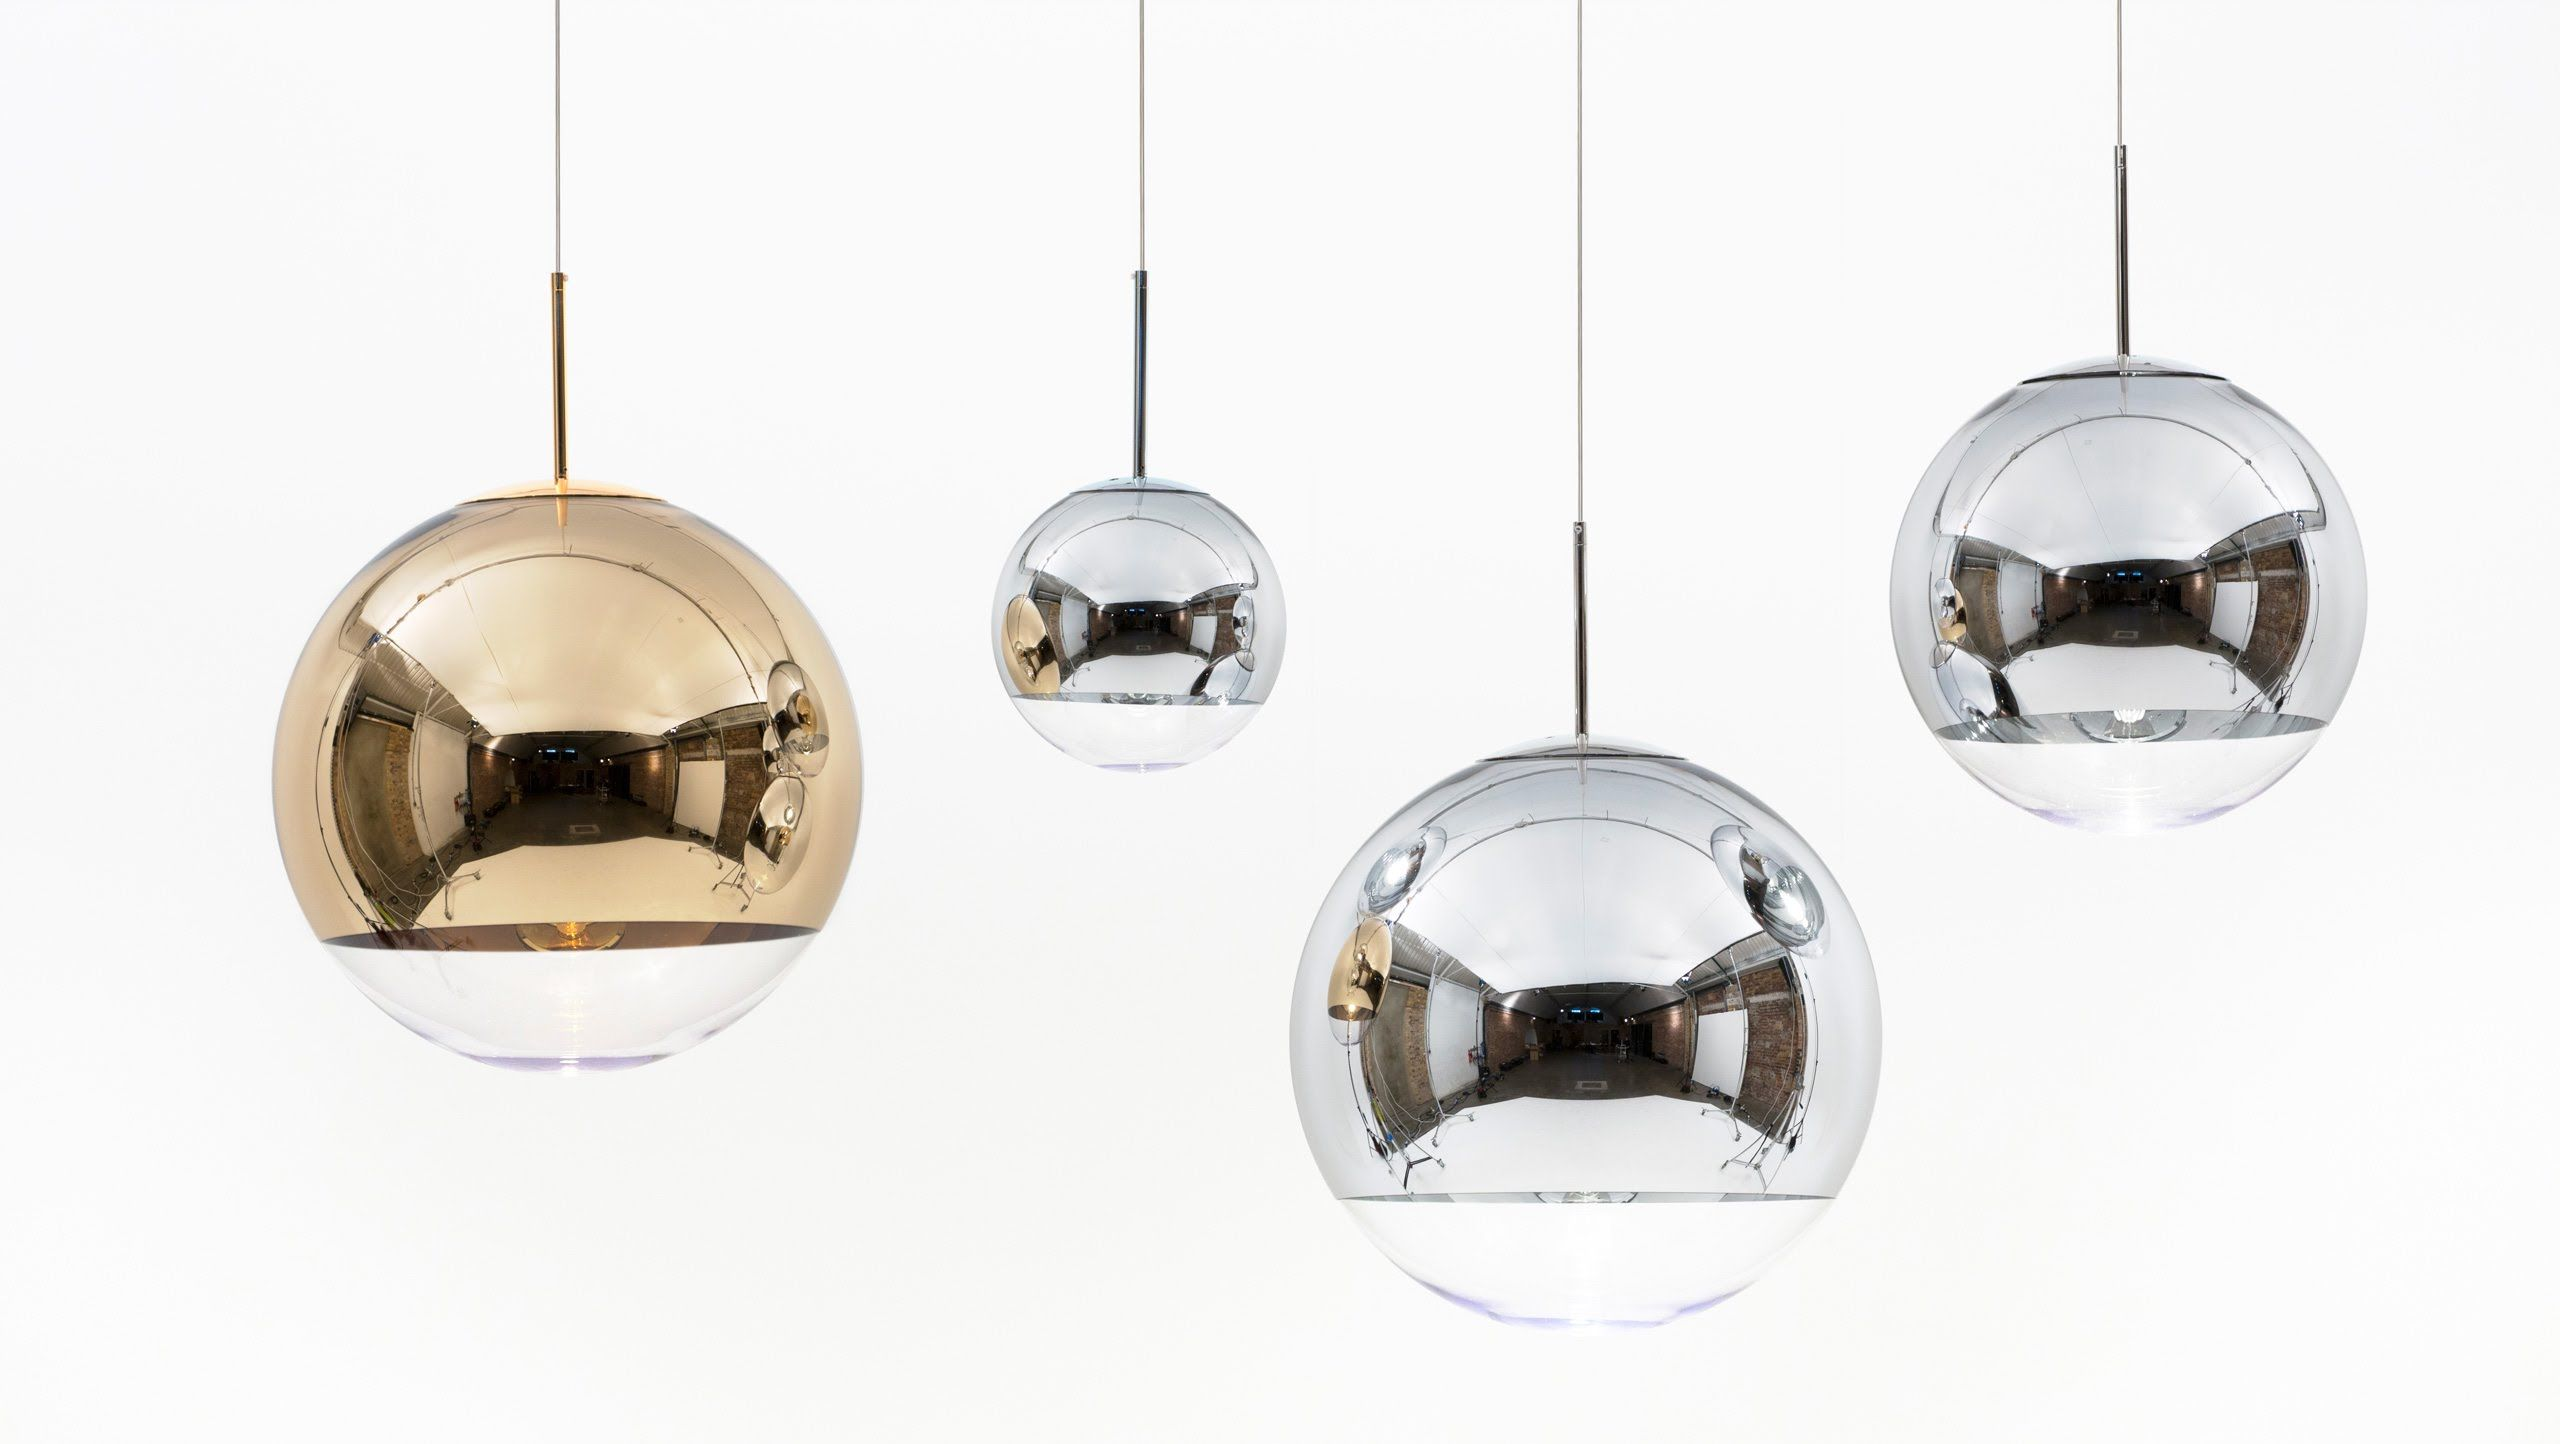 Tom Dixon Says His Mirror Ball Lamp Is A Failure In Design Terms Mirror Ball Ball Lights Ball Lamps